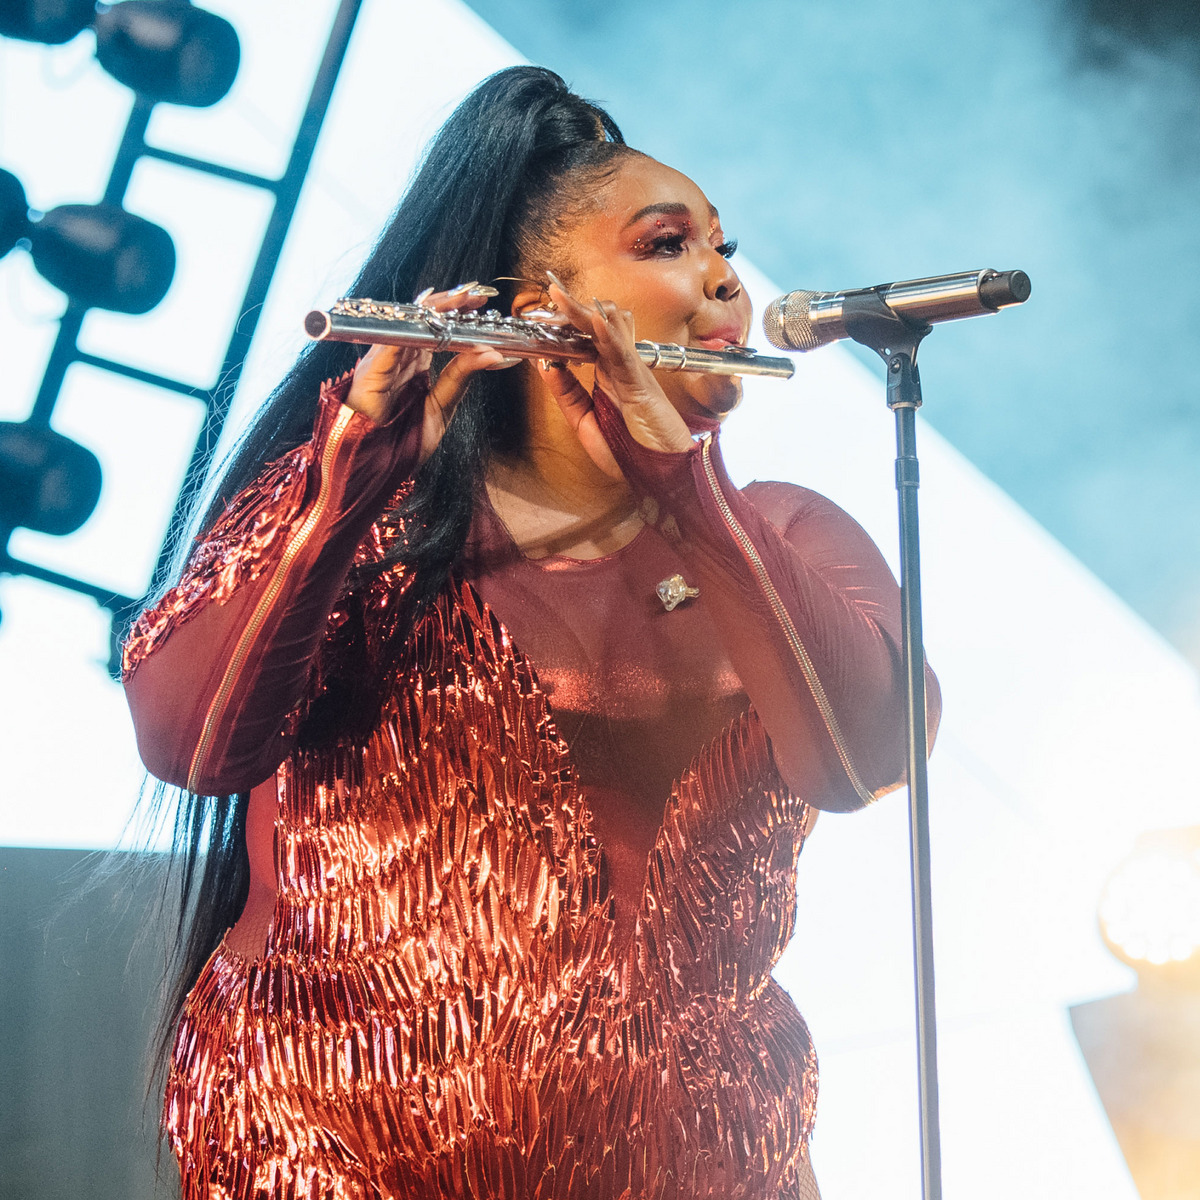 Lizzo playing the flute at Coachella 2019.